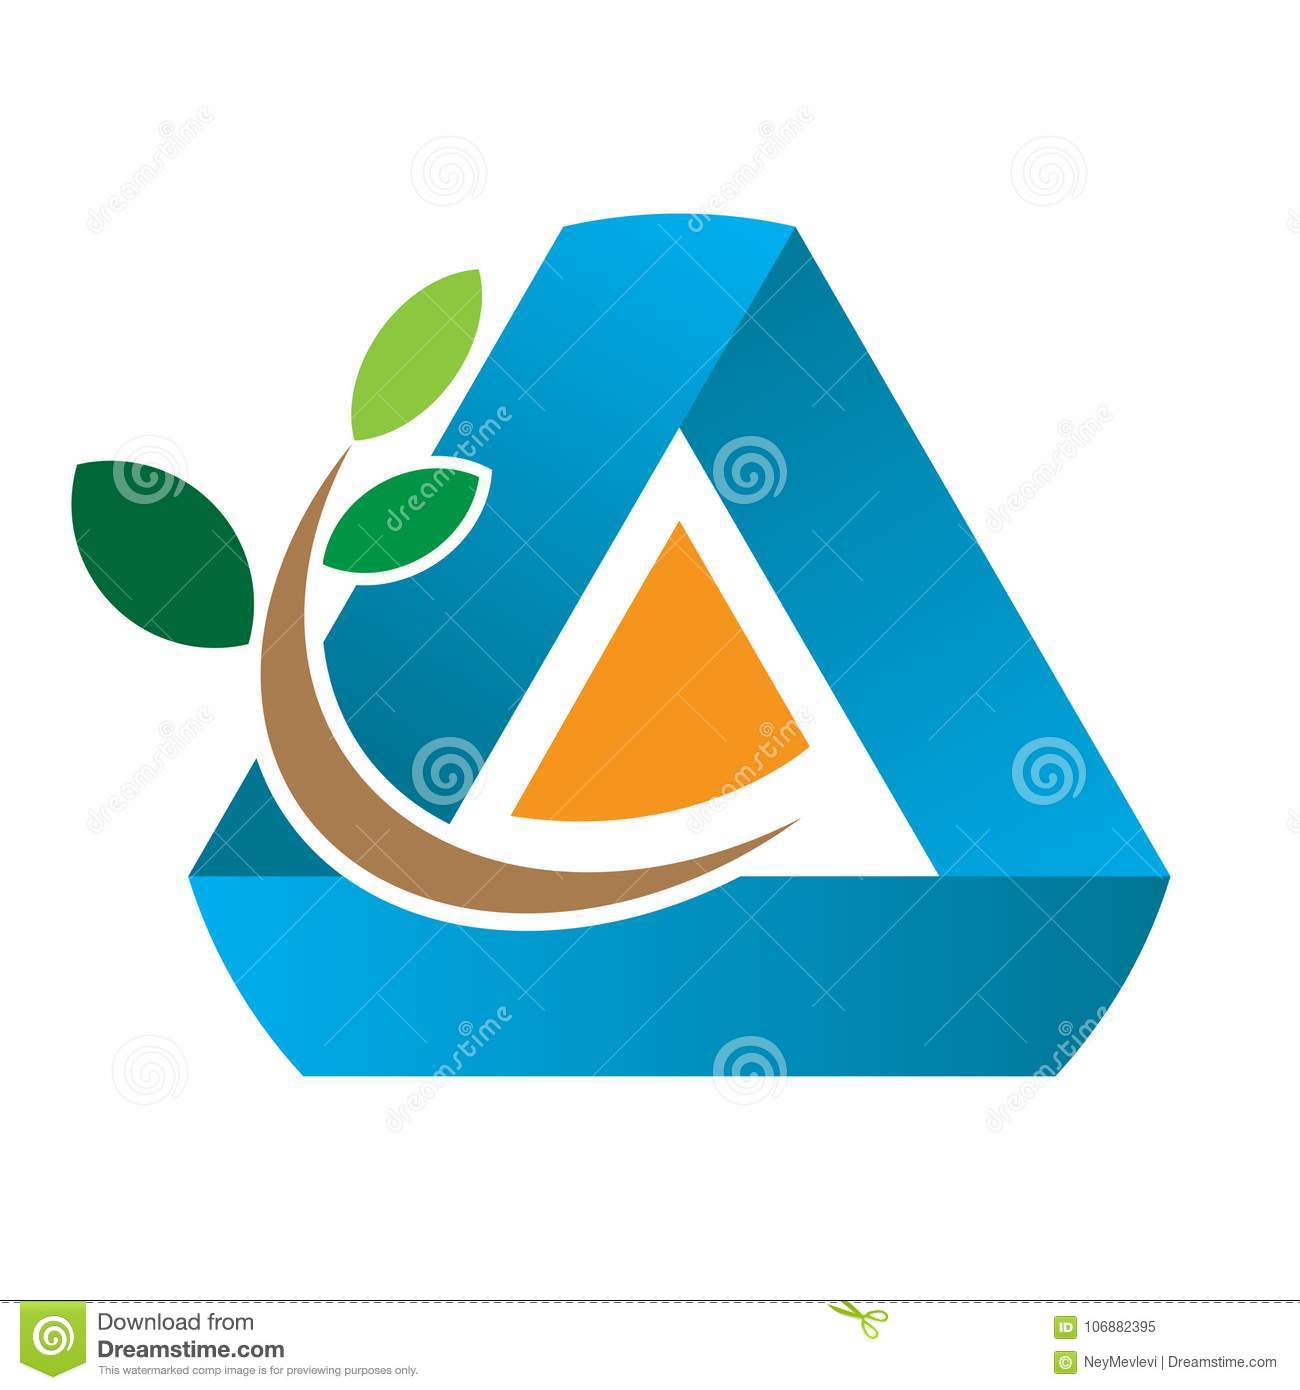 Reforestation Symbol 3 Leaves Stock Vector Illustration Of Ecology